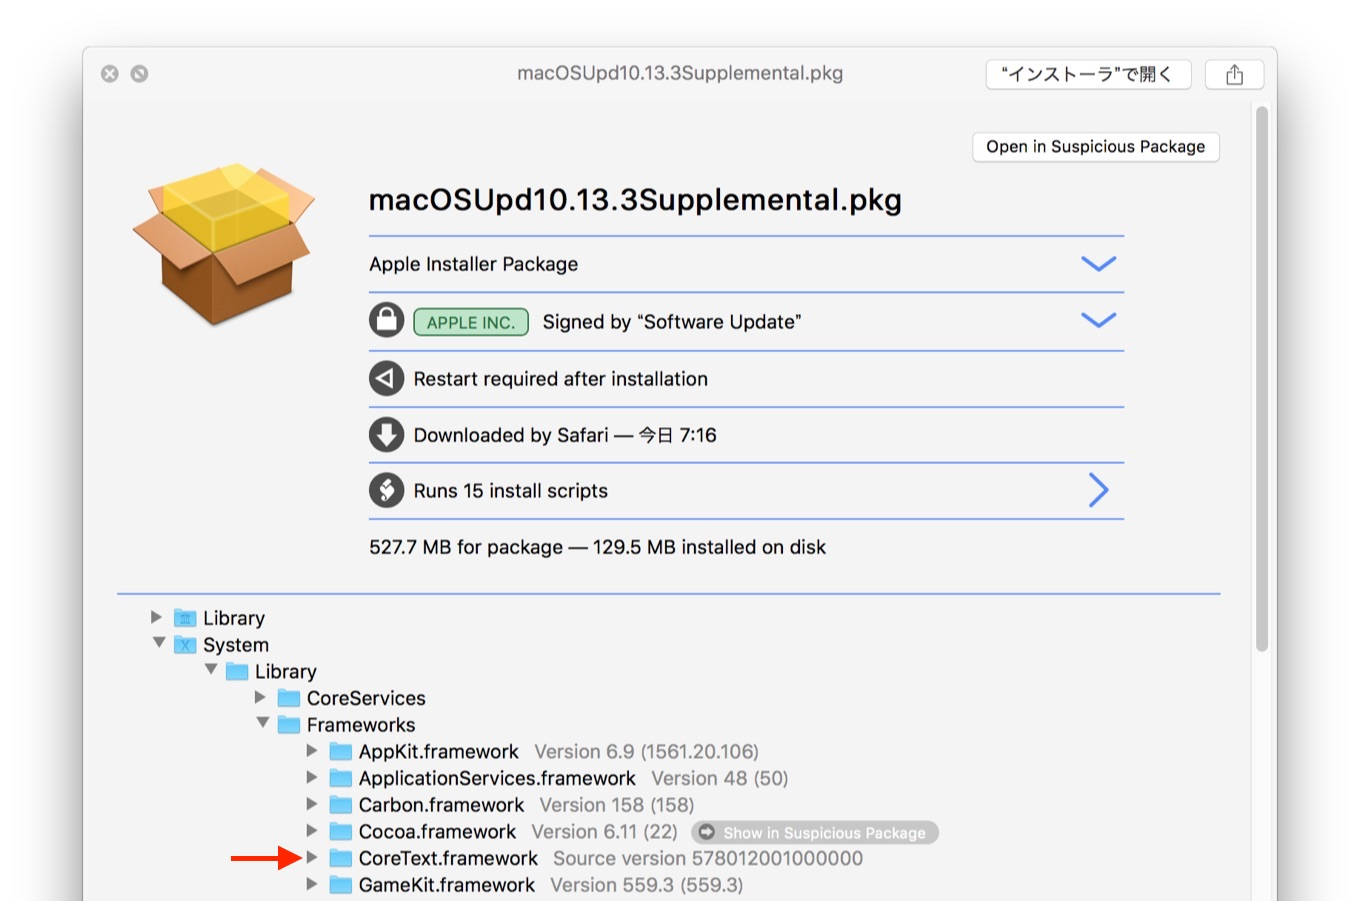 macOSUpd10.13.3Supplementalの詳細